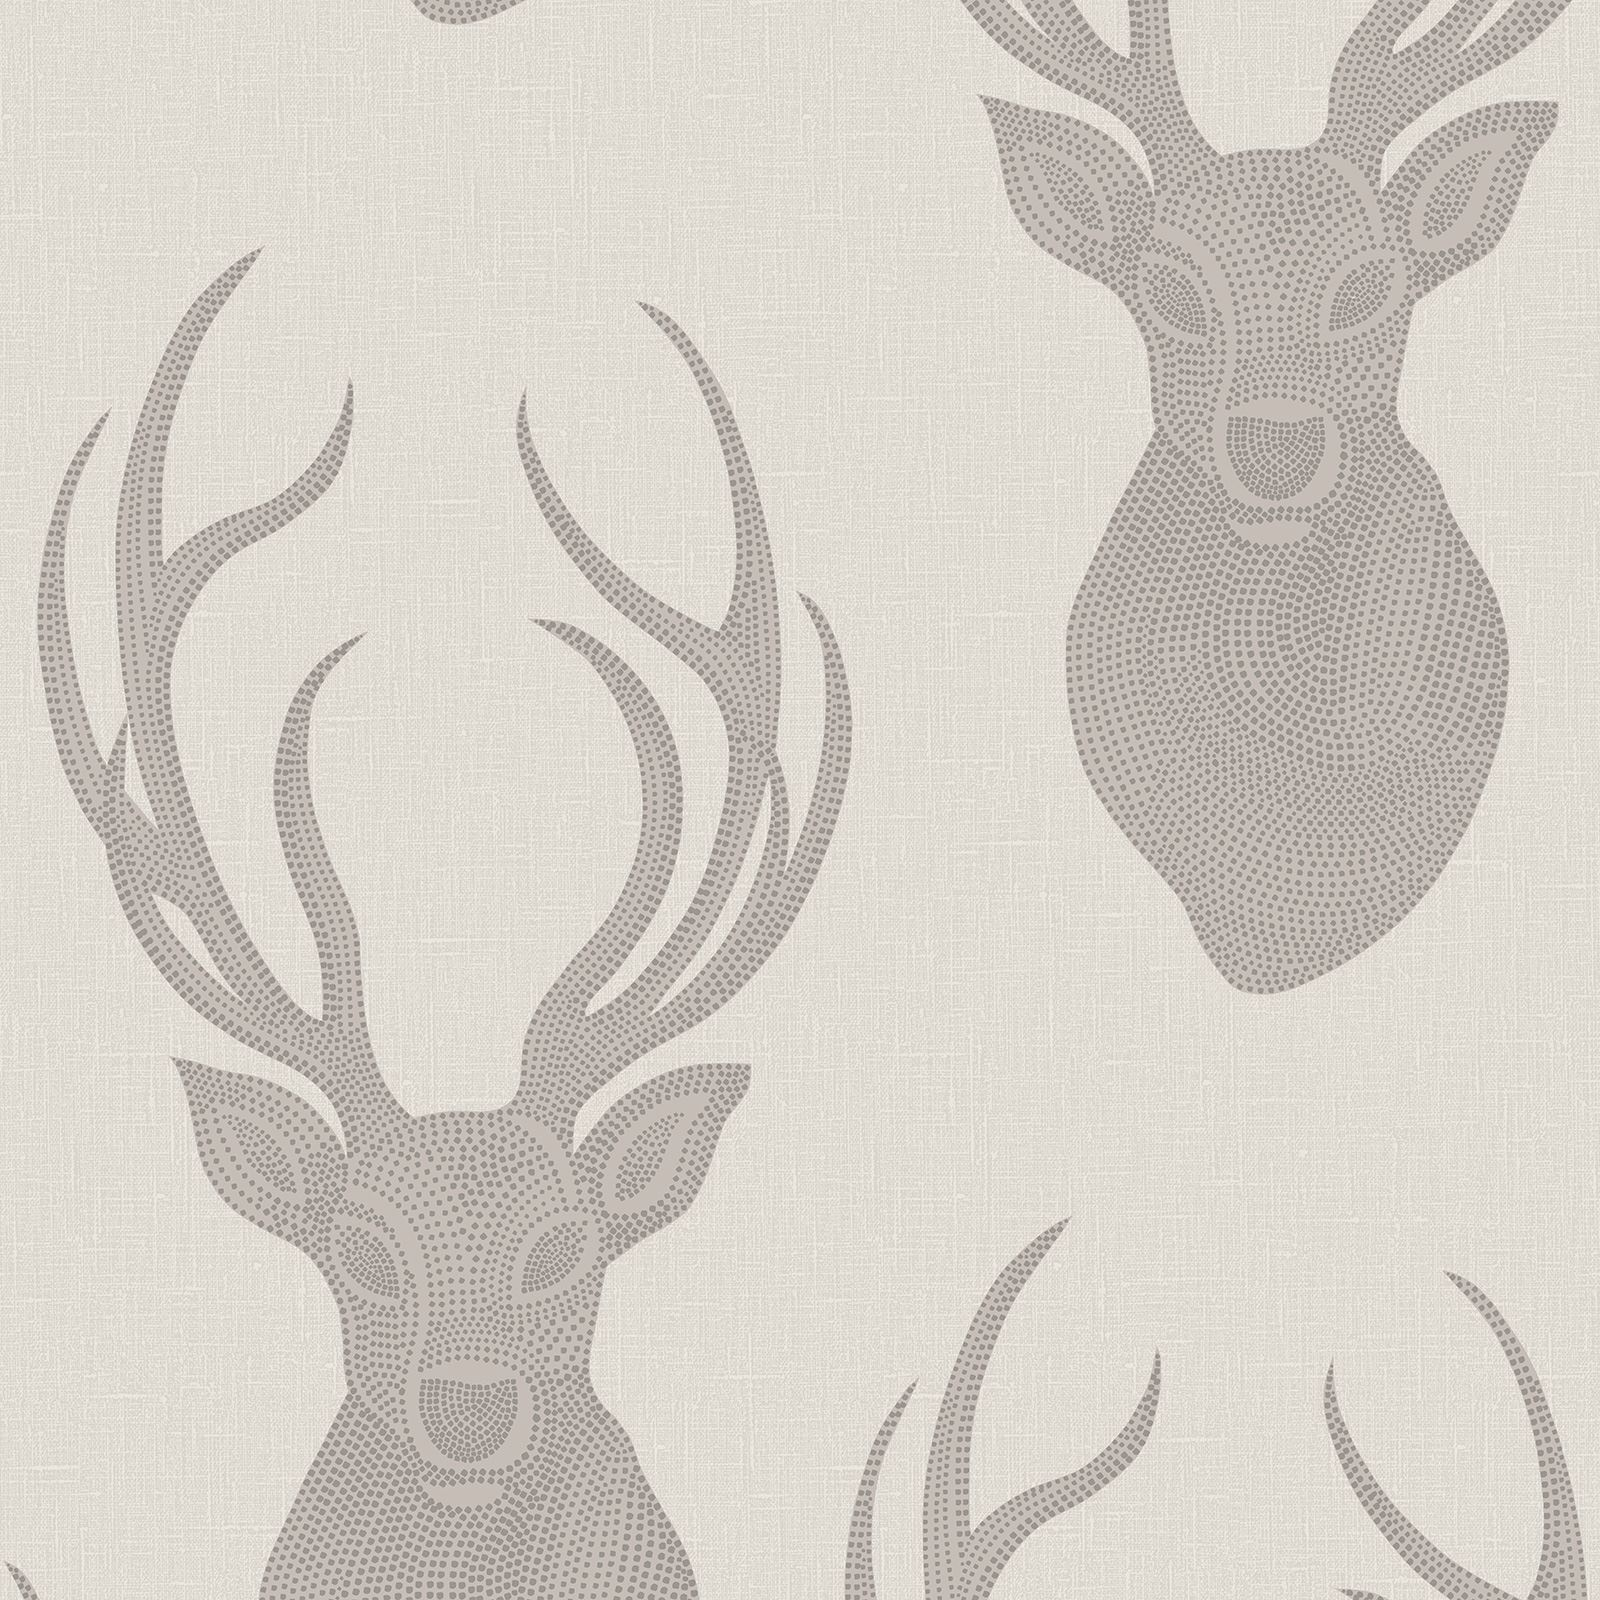 STUNNING STAG WALLPAPER VARIOUS DESIGNS IN SOFT NATURAL TONES ...